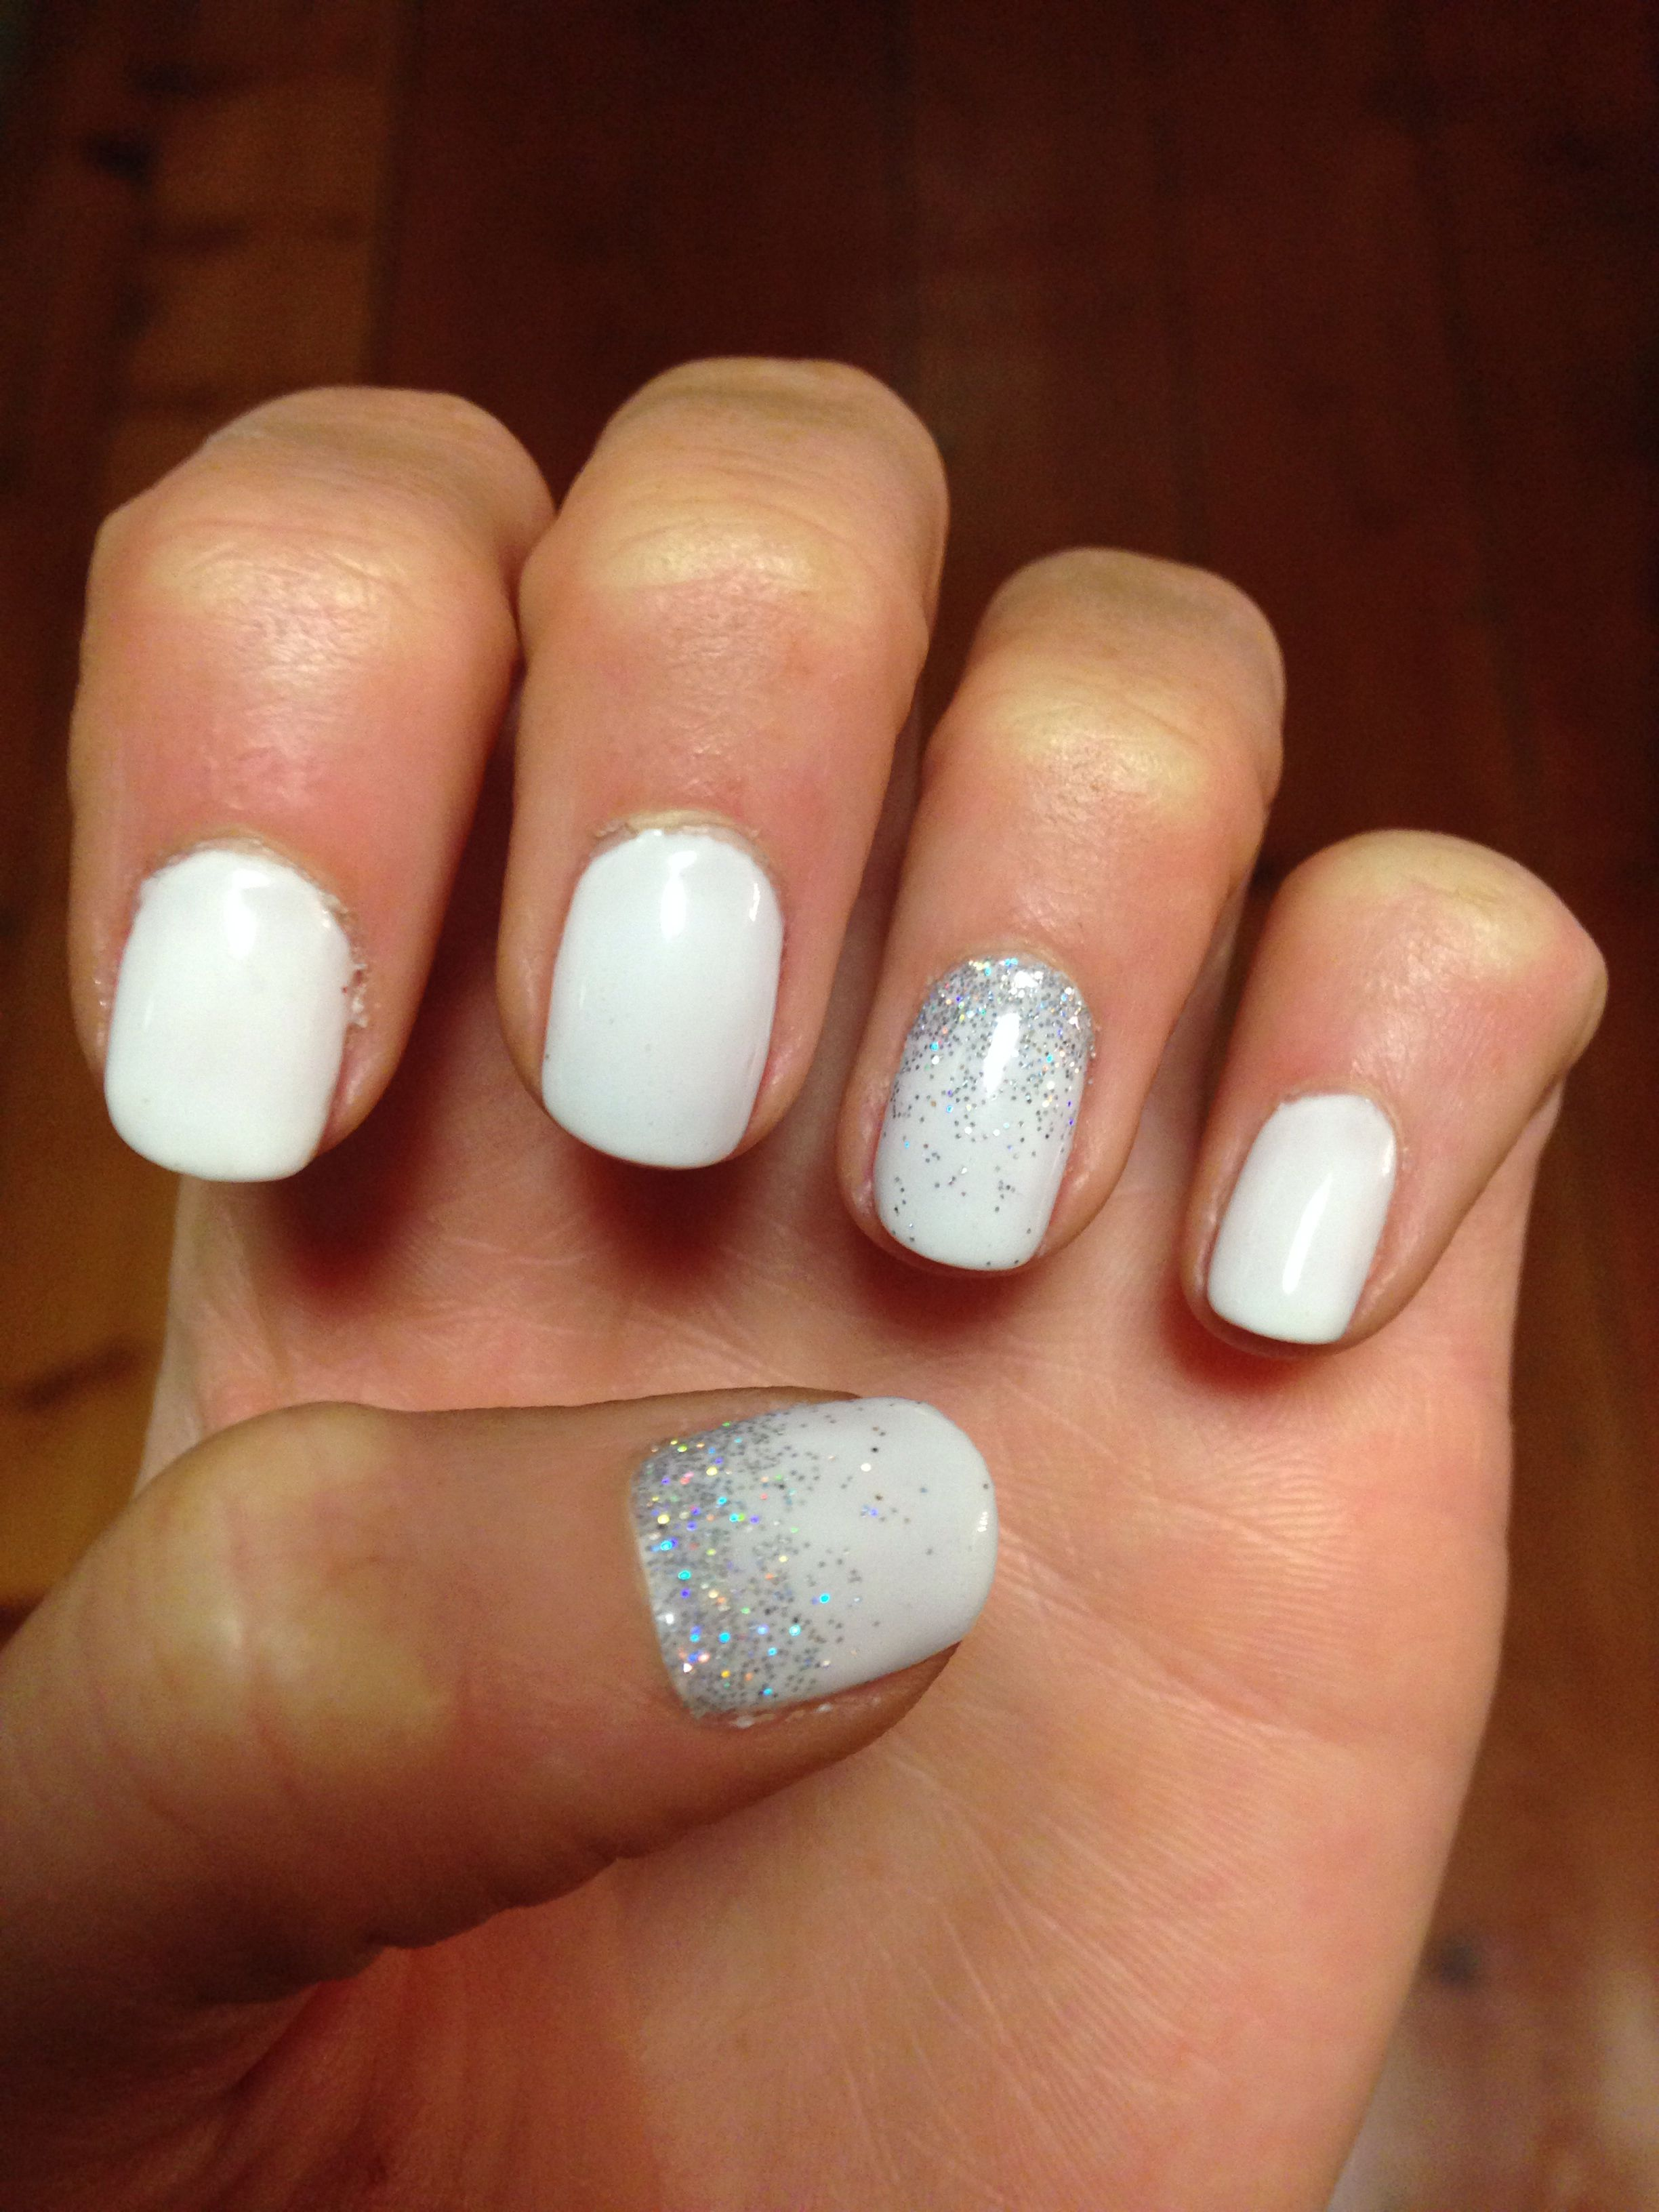 Pin By Jaymee Boguszewicz On Glitz Glam White Glitter Nails White Shellac Nails White Gel Nails